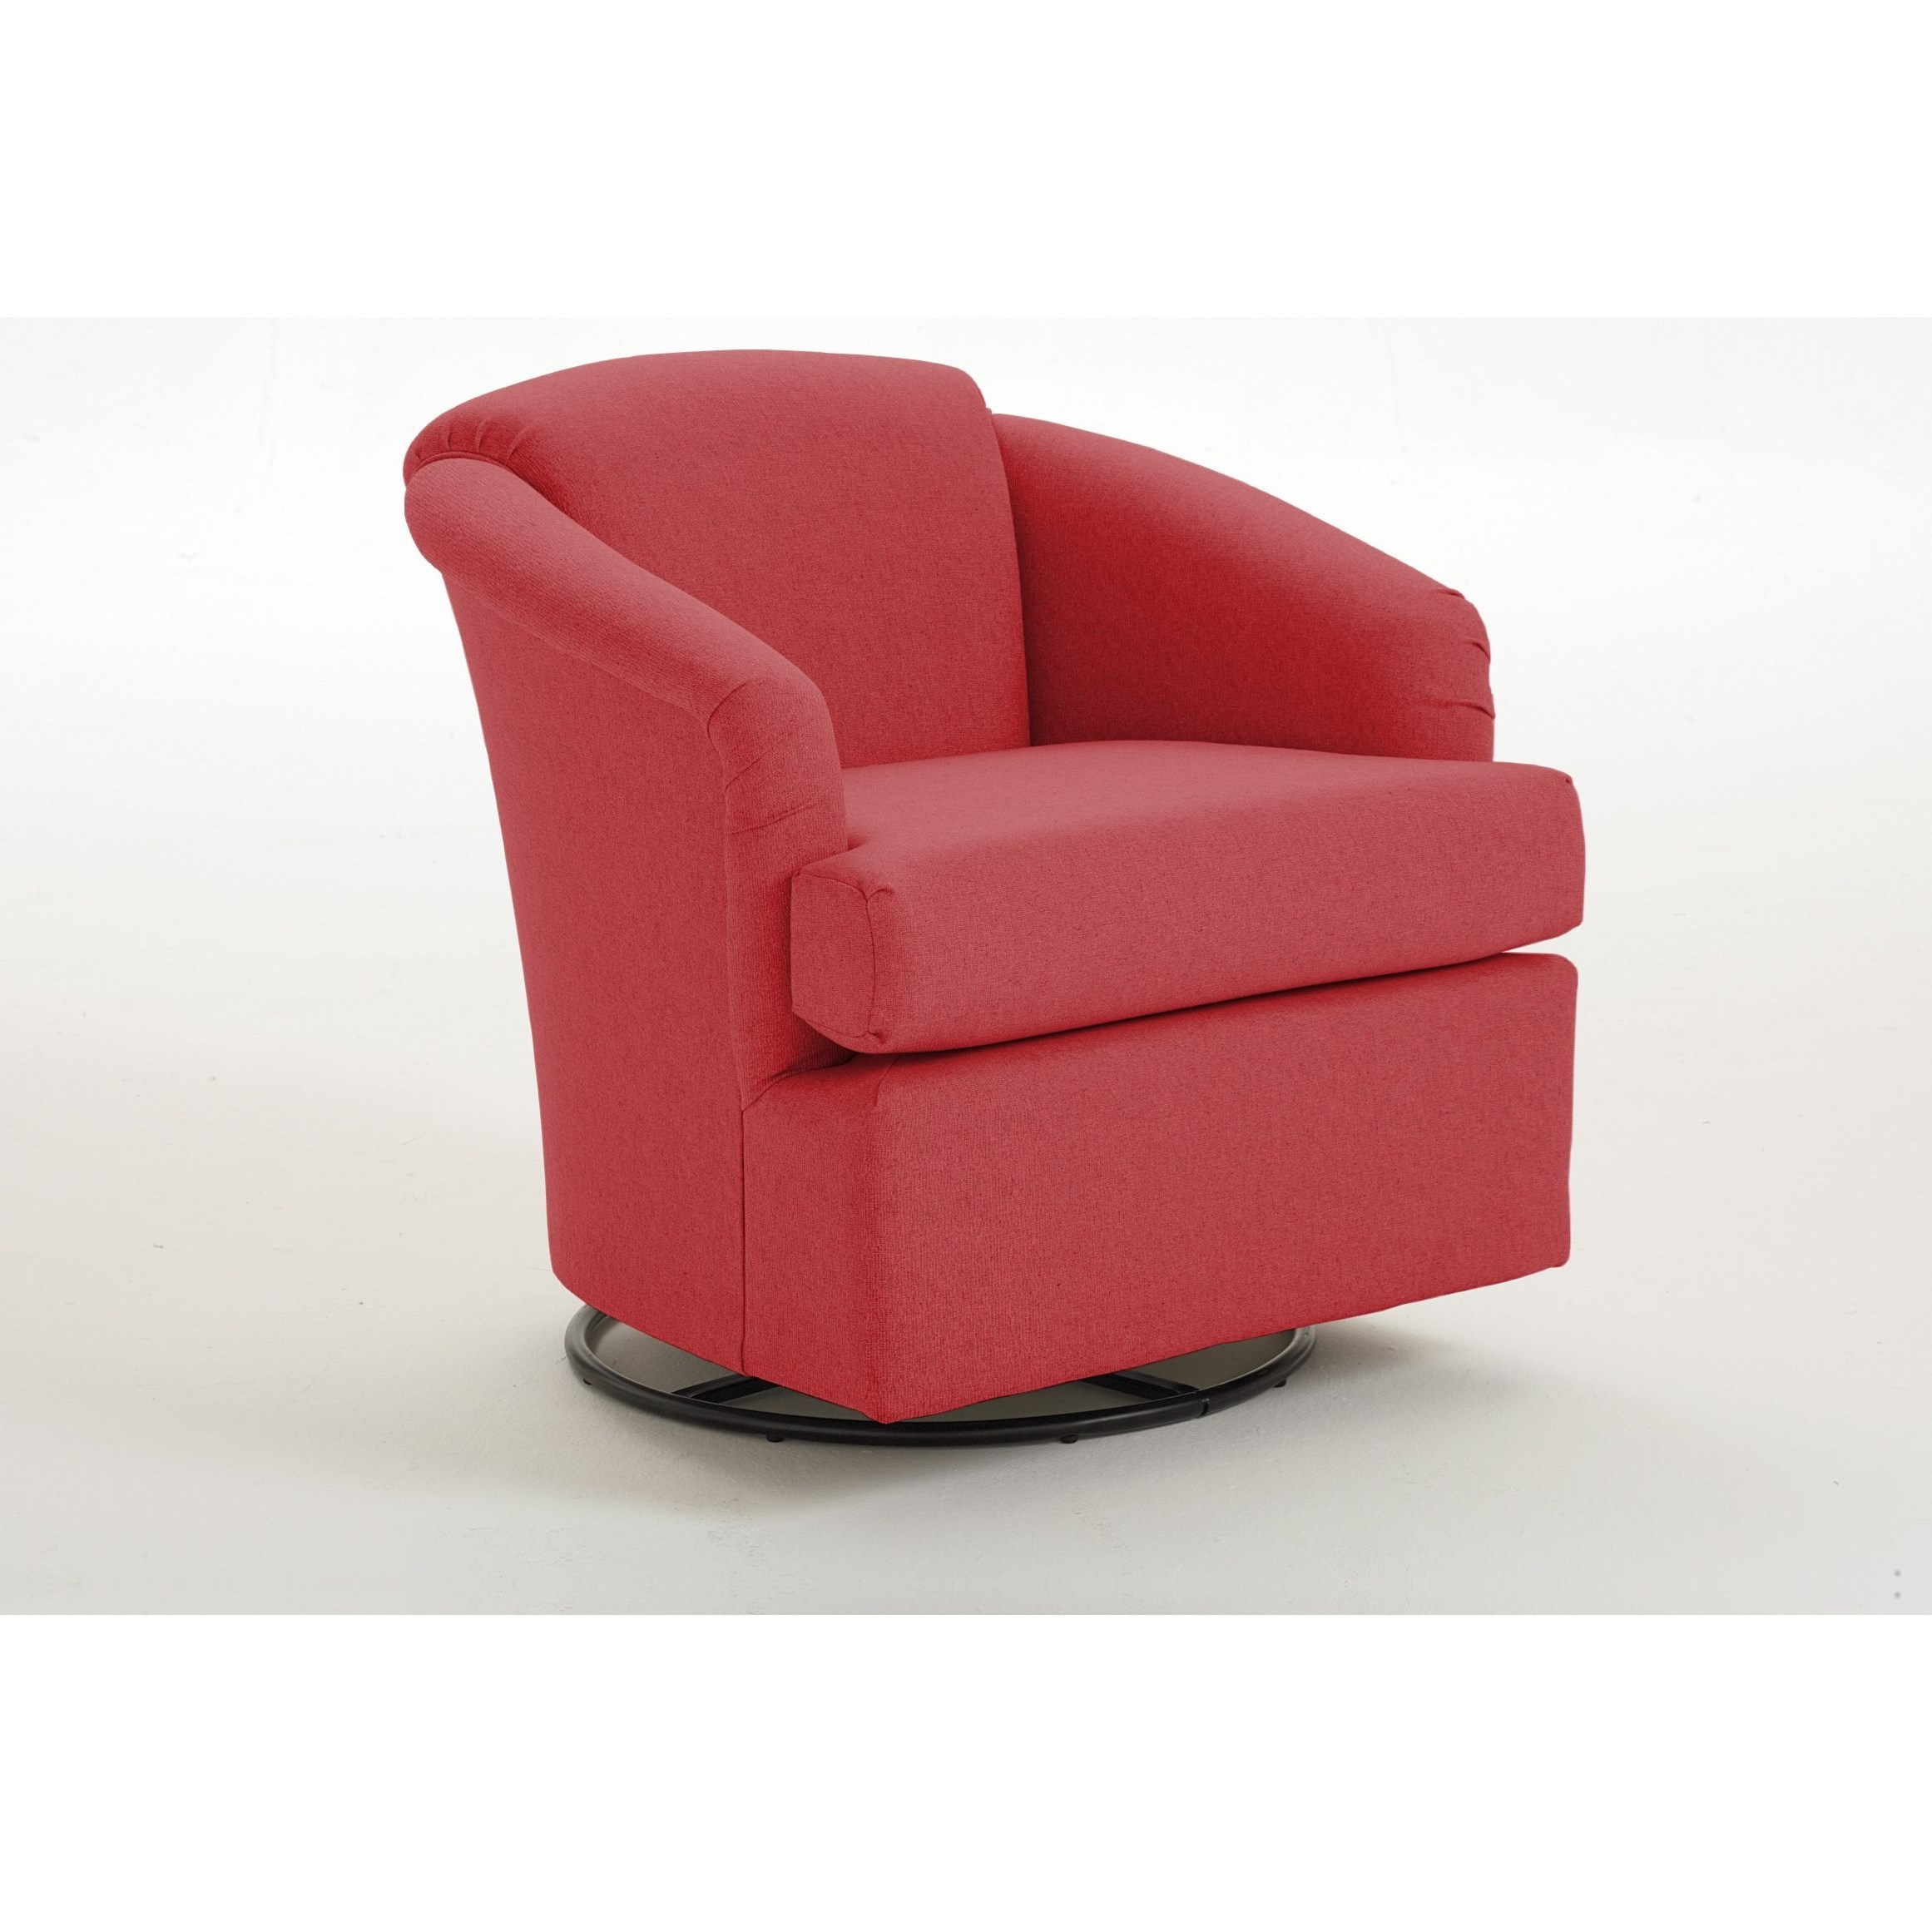 Swivel Barrel Cass Swivel Barrel Chair by Best Home Furnishings at Walker's Furniture